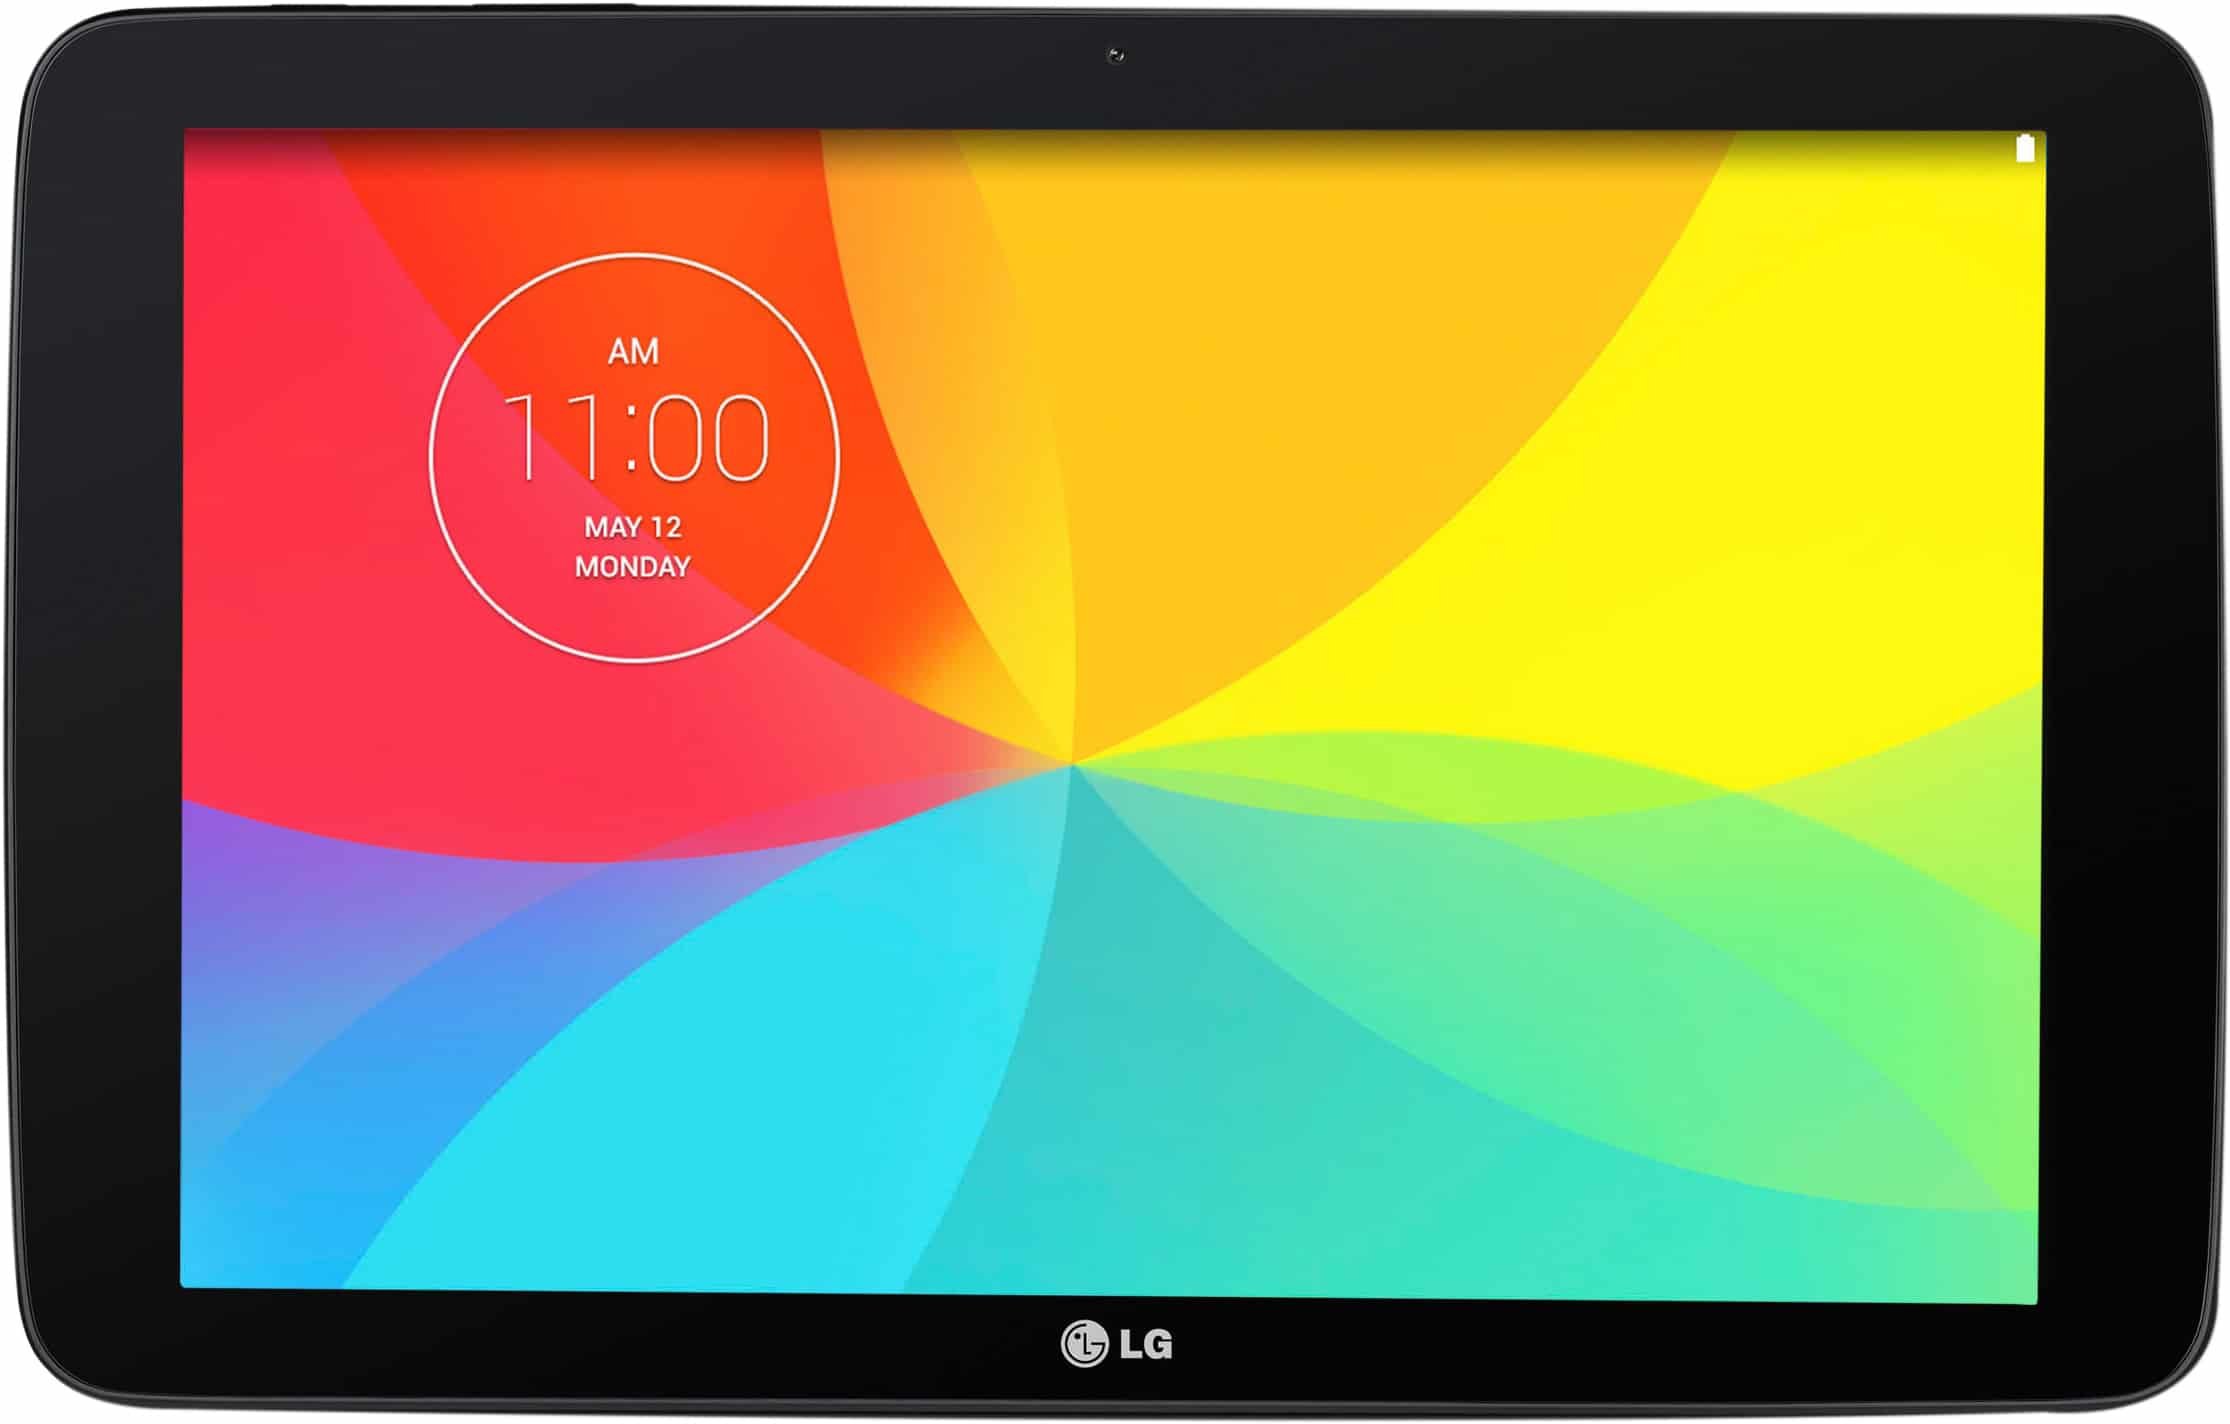 LG G Pad 10.1 available on Best Buy at $249.99